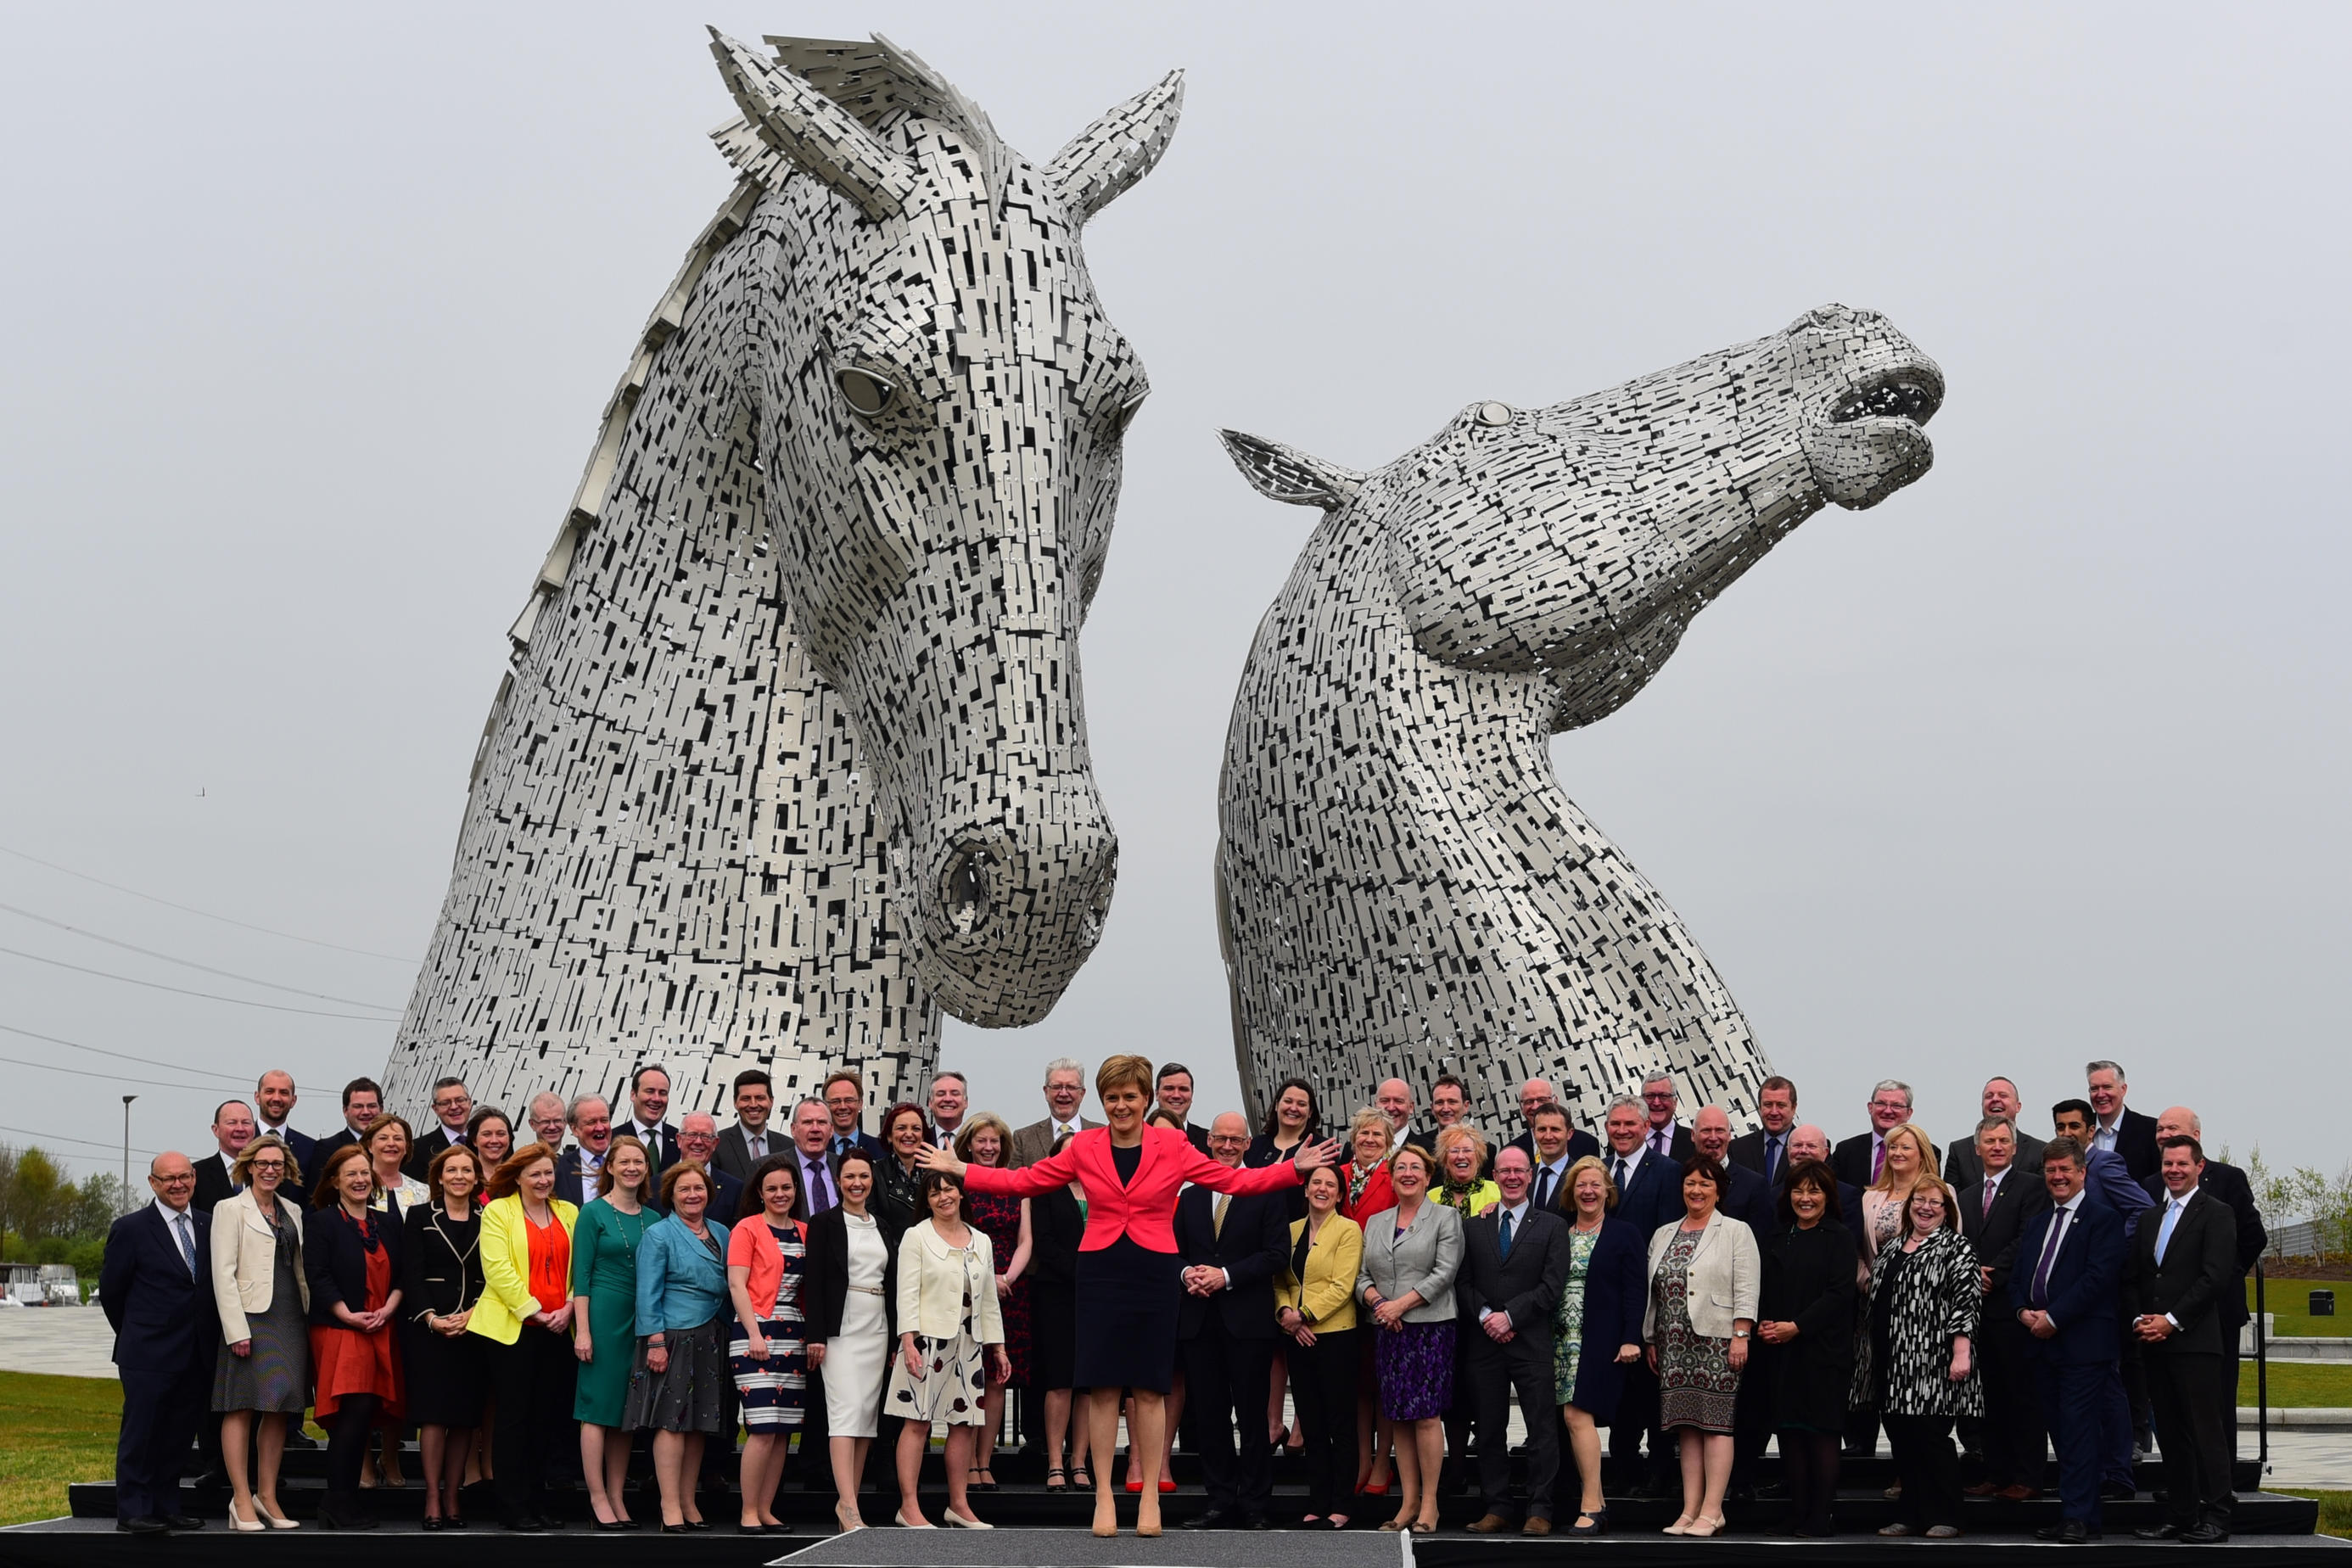 """Scottish First Minister Nicola Sturgeon introduces all 63 new SNP MSPs to the media at a photocall against the the backdrop of """"The Kelpies"""" sculpture in Falkirk (Ken Jack / Alamy Live News)"""